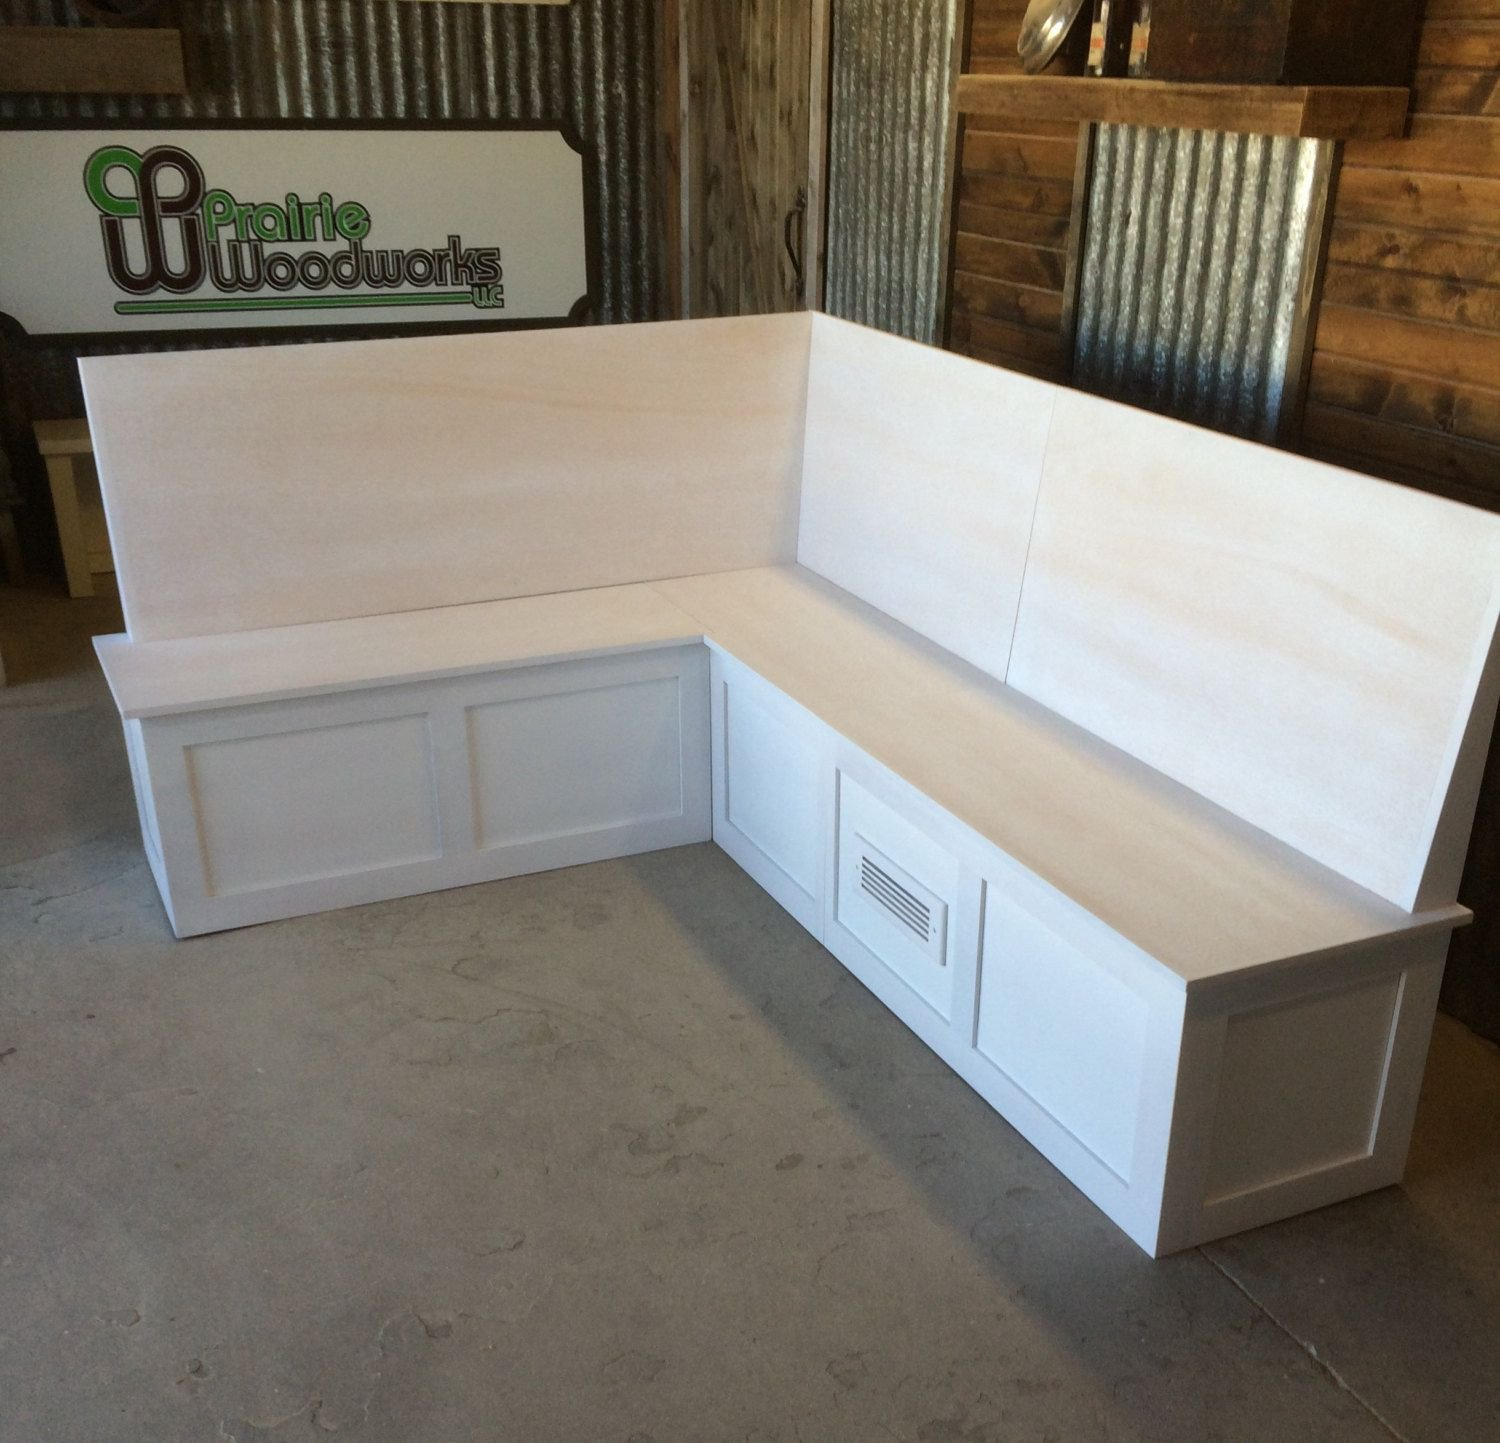 Bedroom Storage Bench Seat Elegant Pin by Jfunk On Banquette